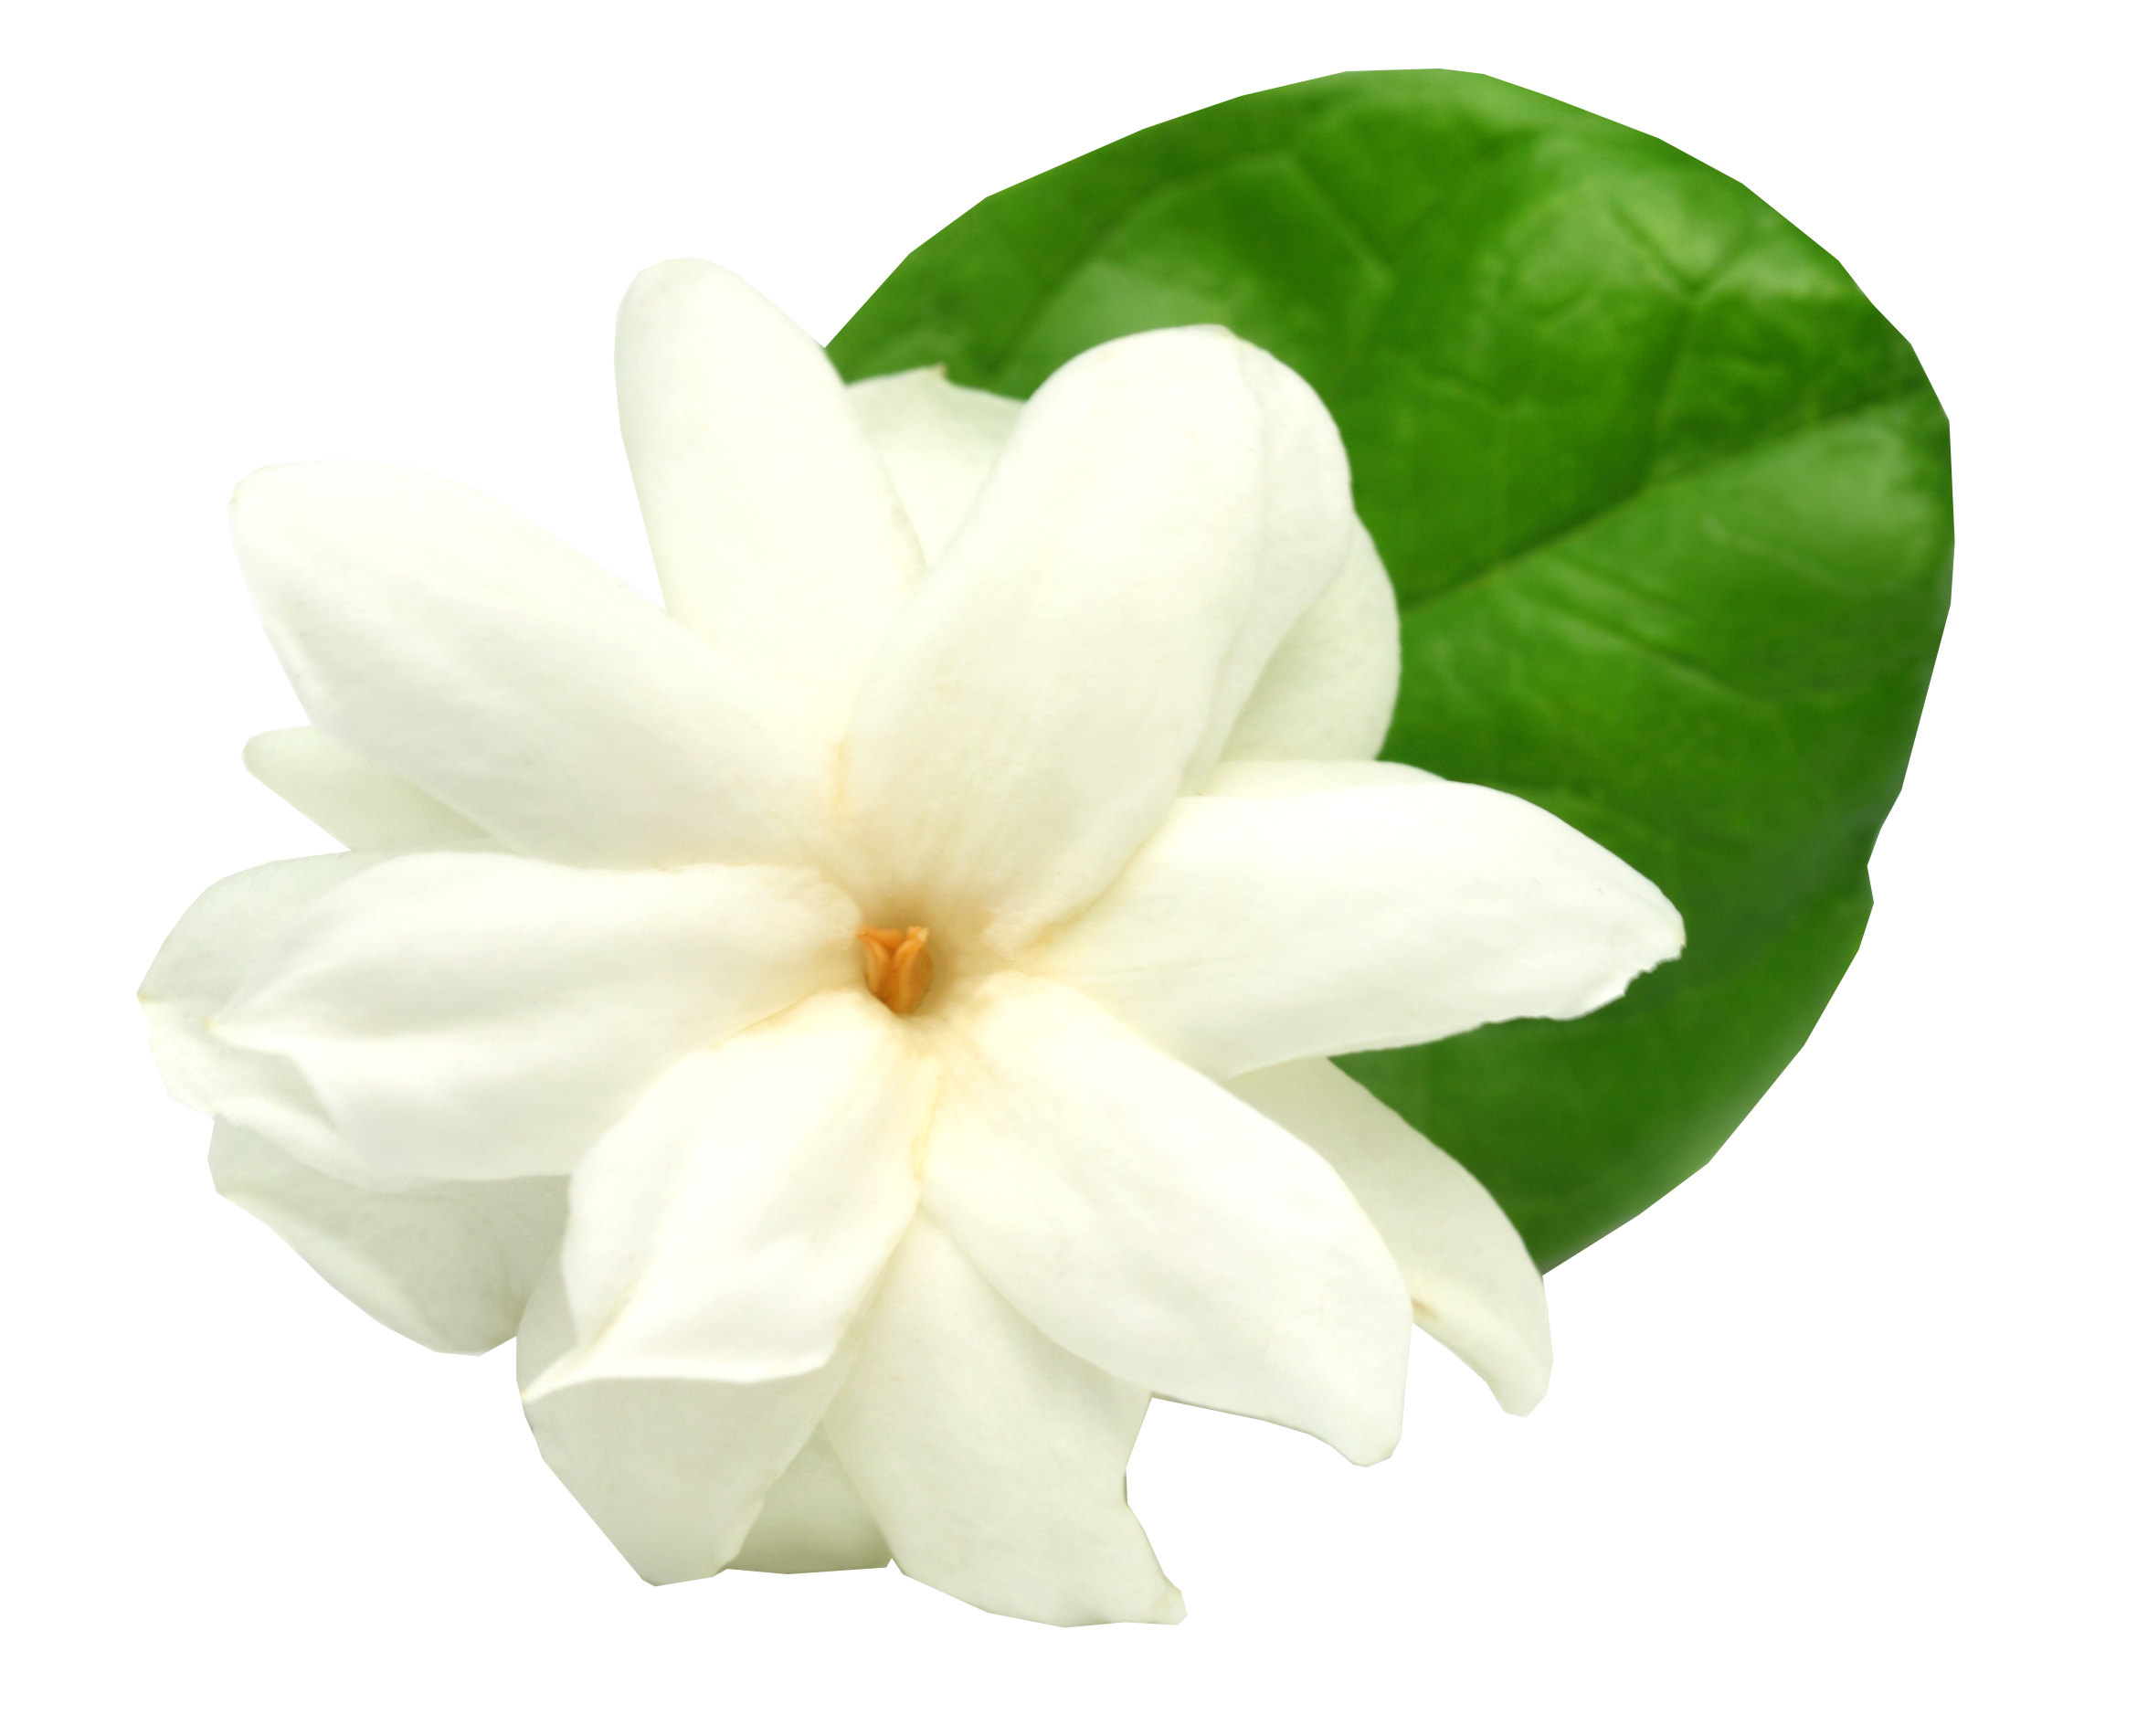 Jasmine flower png. Arabian stock photography clip